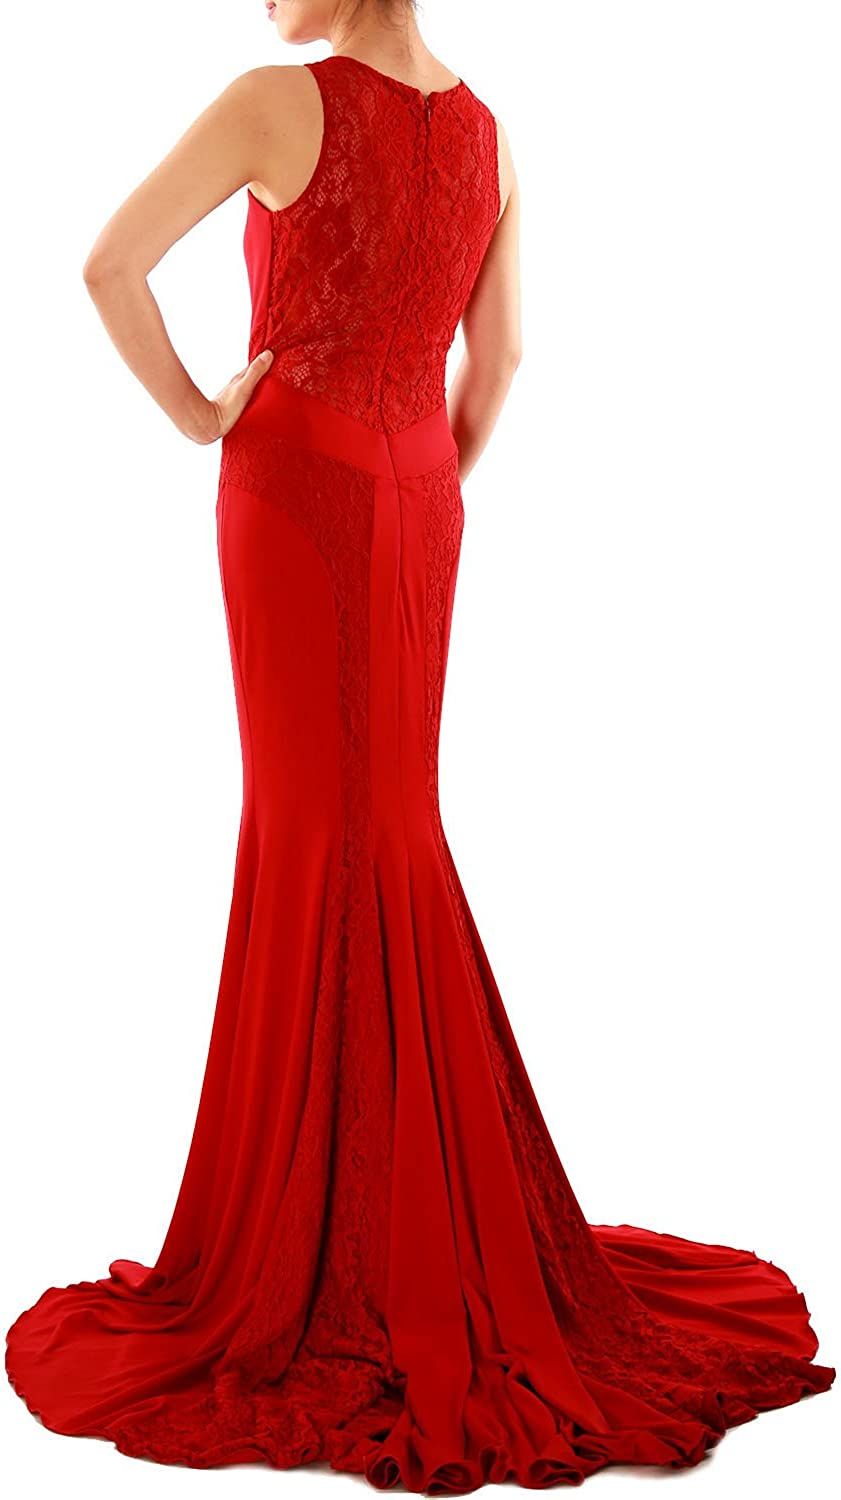 MACloth Women Mermaid Lace Boat Neck Jersey Long Formal Evening Dress Prom Gown Black